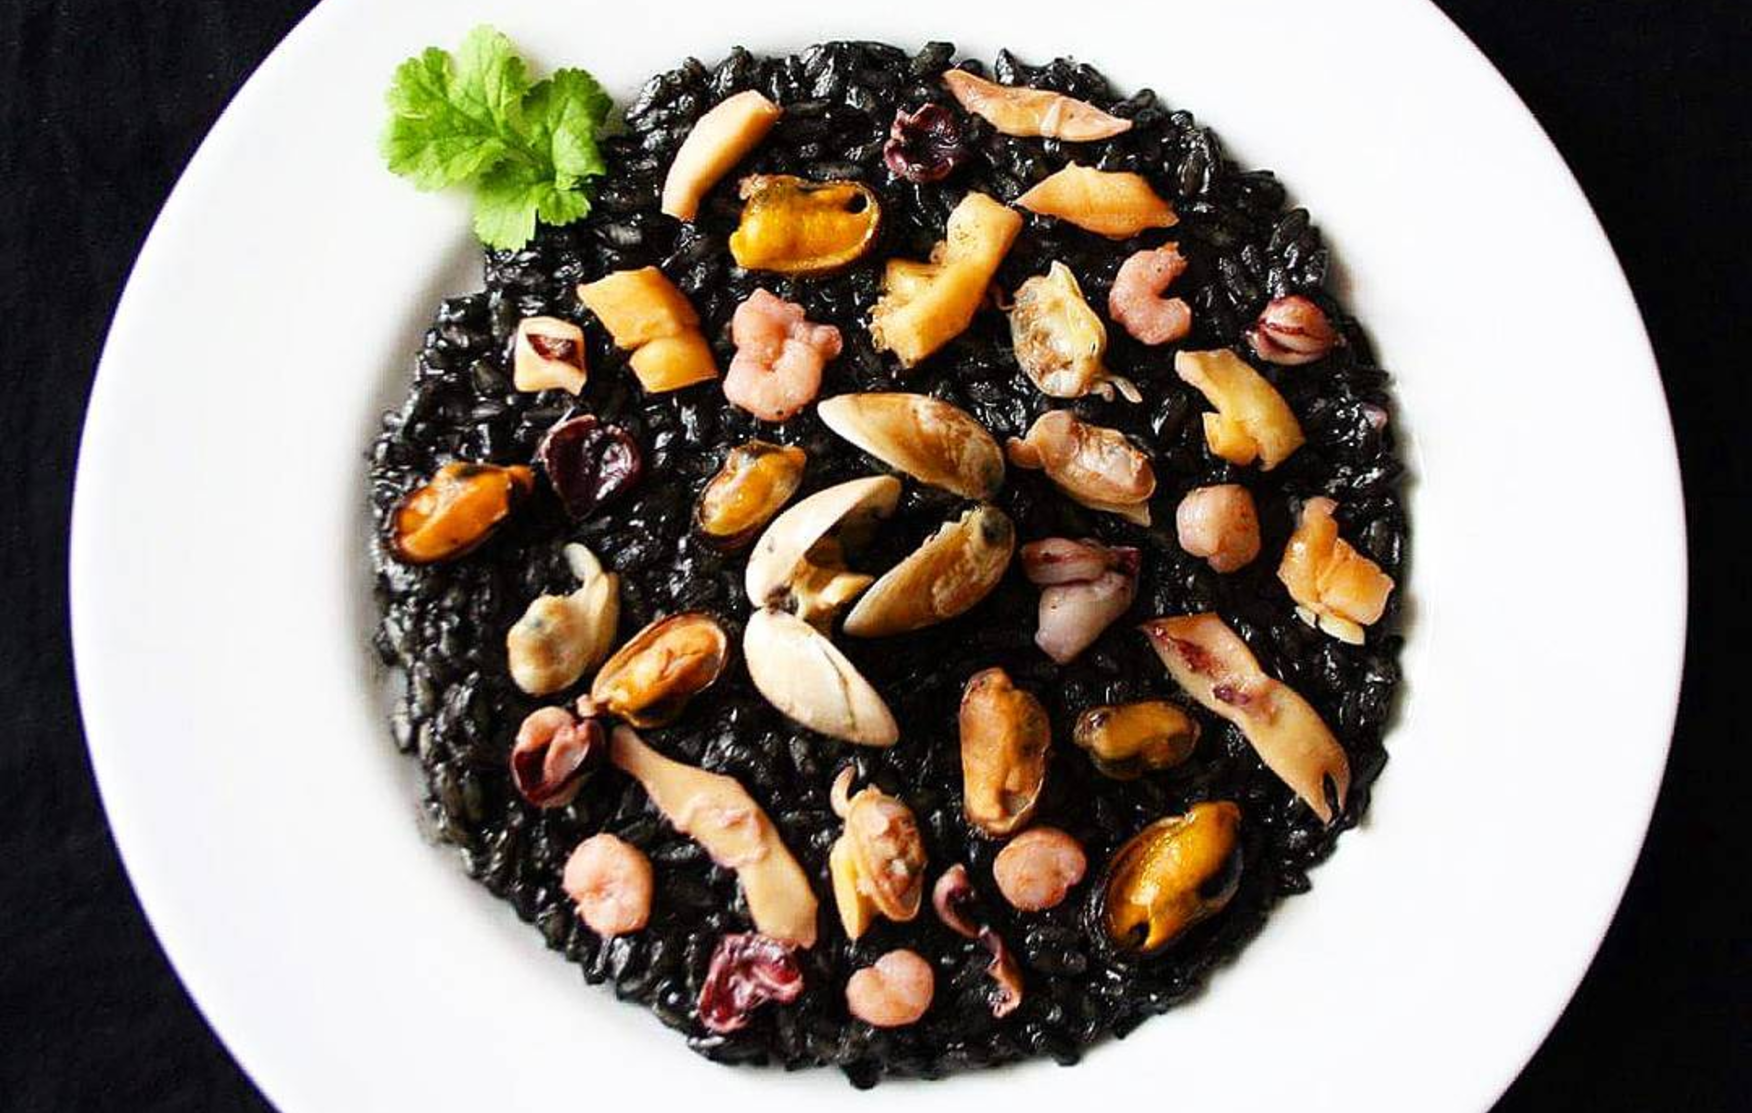 Squid ink risotto ©g.lany / Instagram